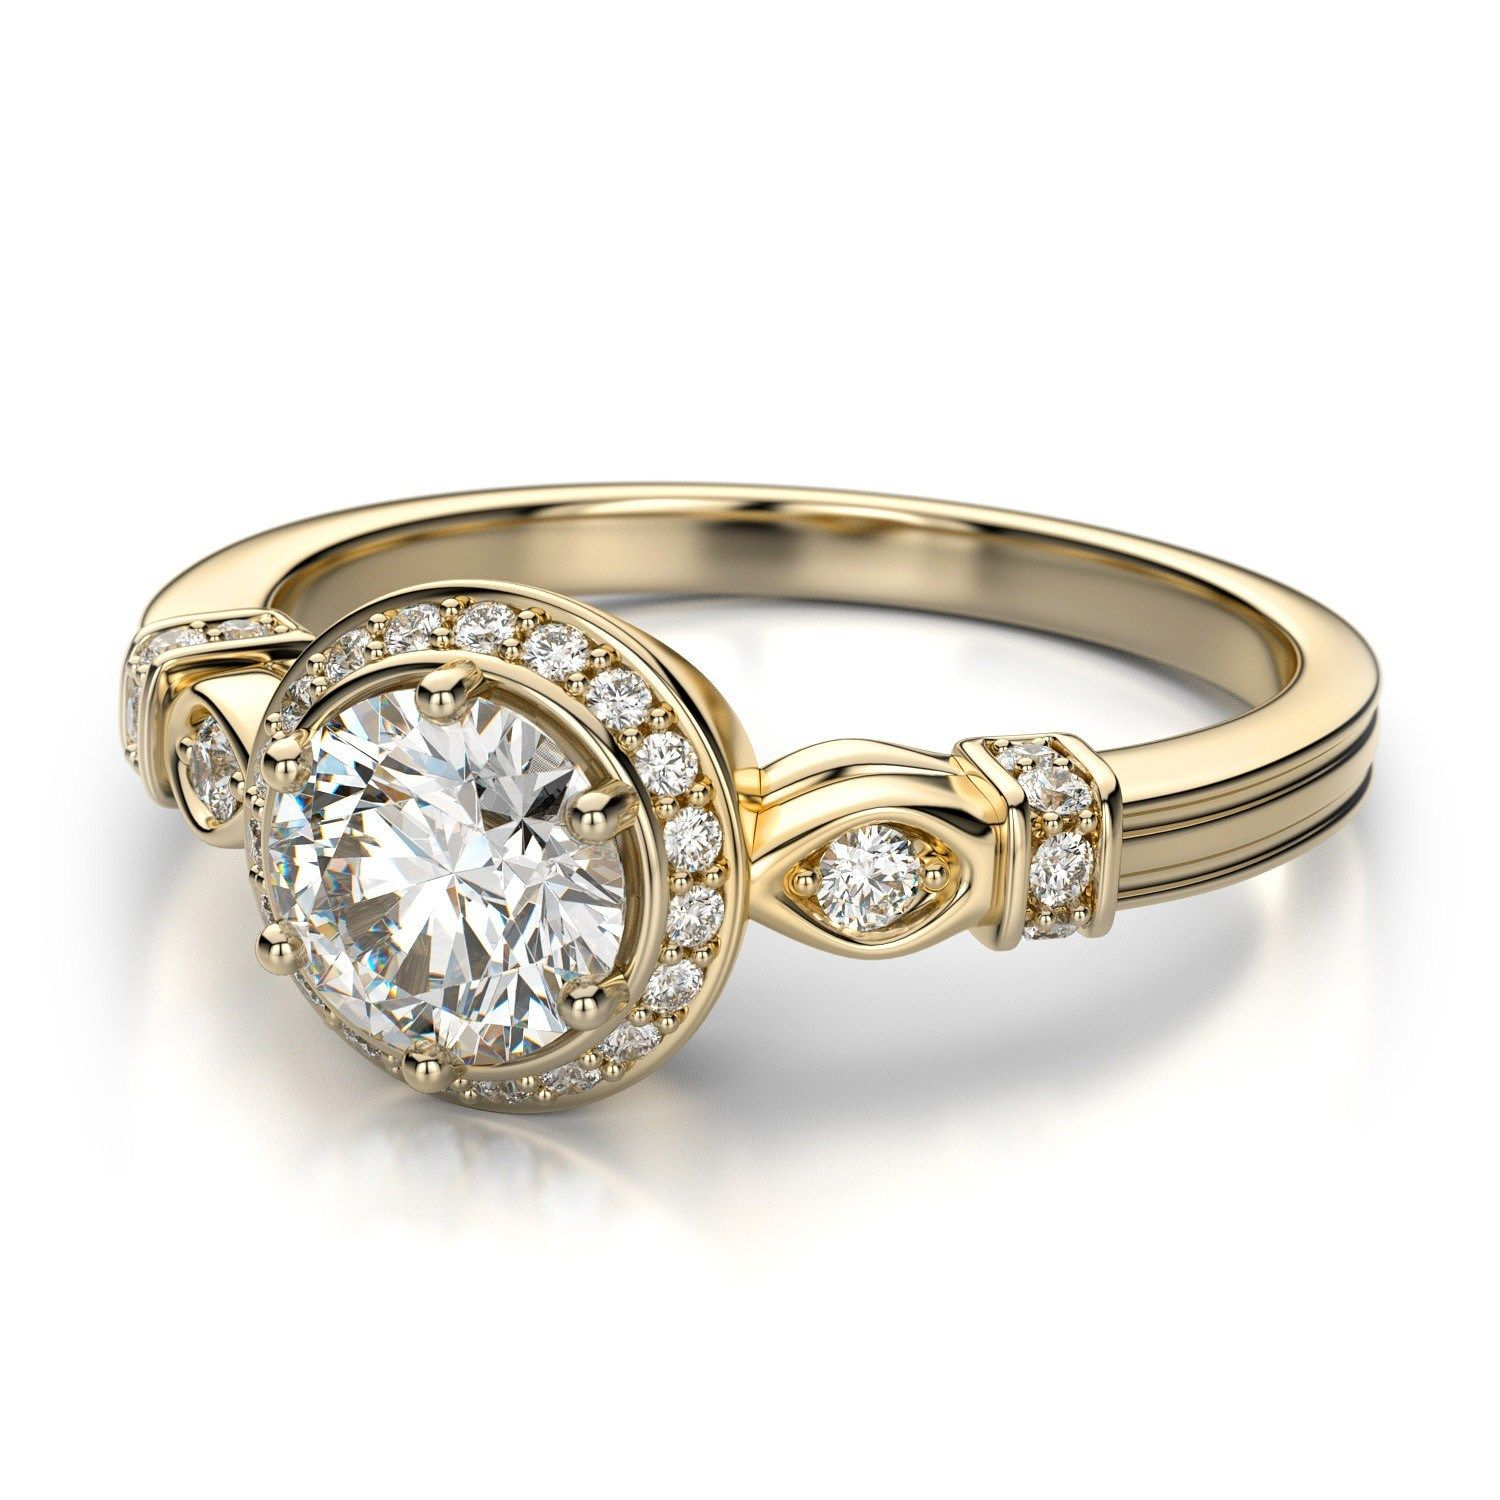 selection perfect your her s true come to dream engagement see rings diamond every of stays begins with that accessory the ring woman and best forevermark brightest finding pin style